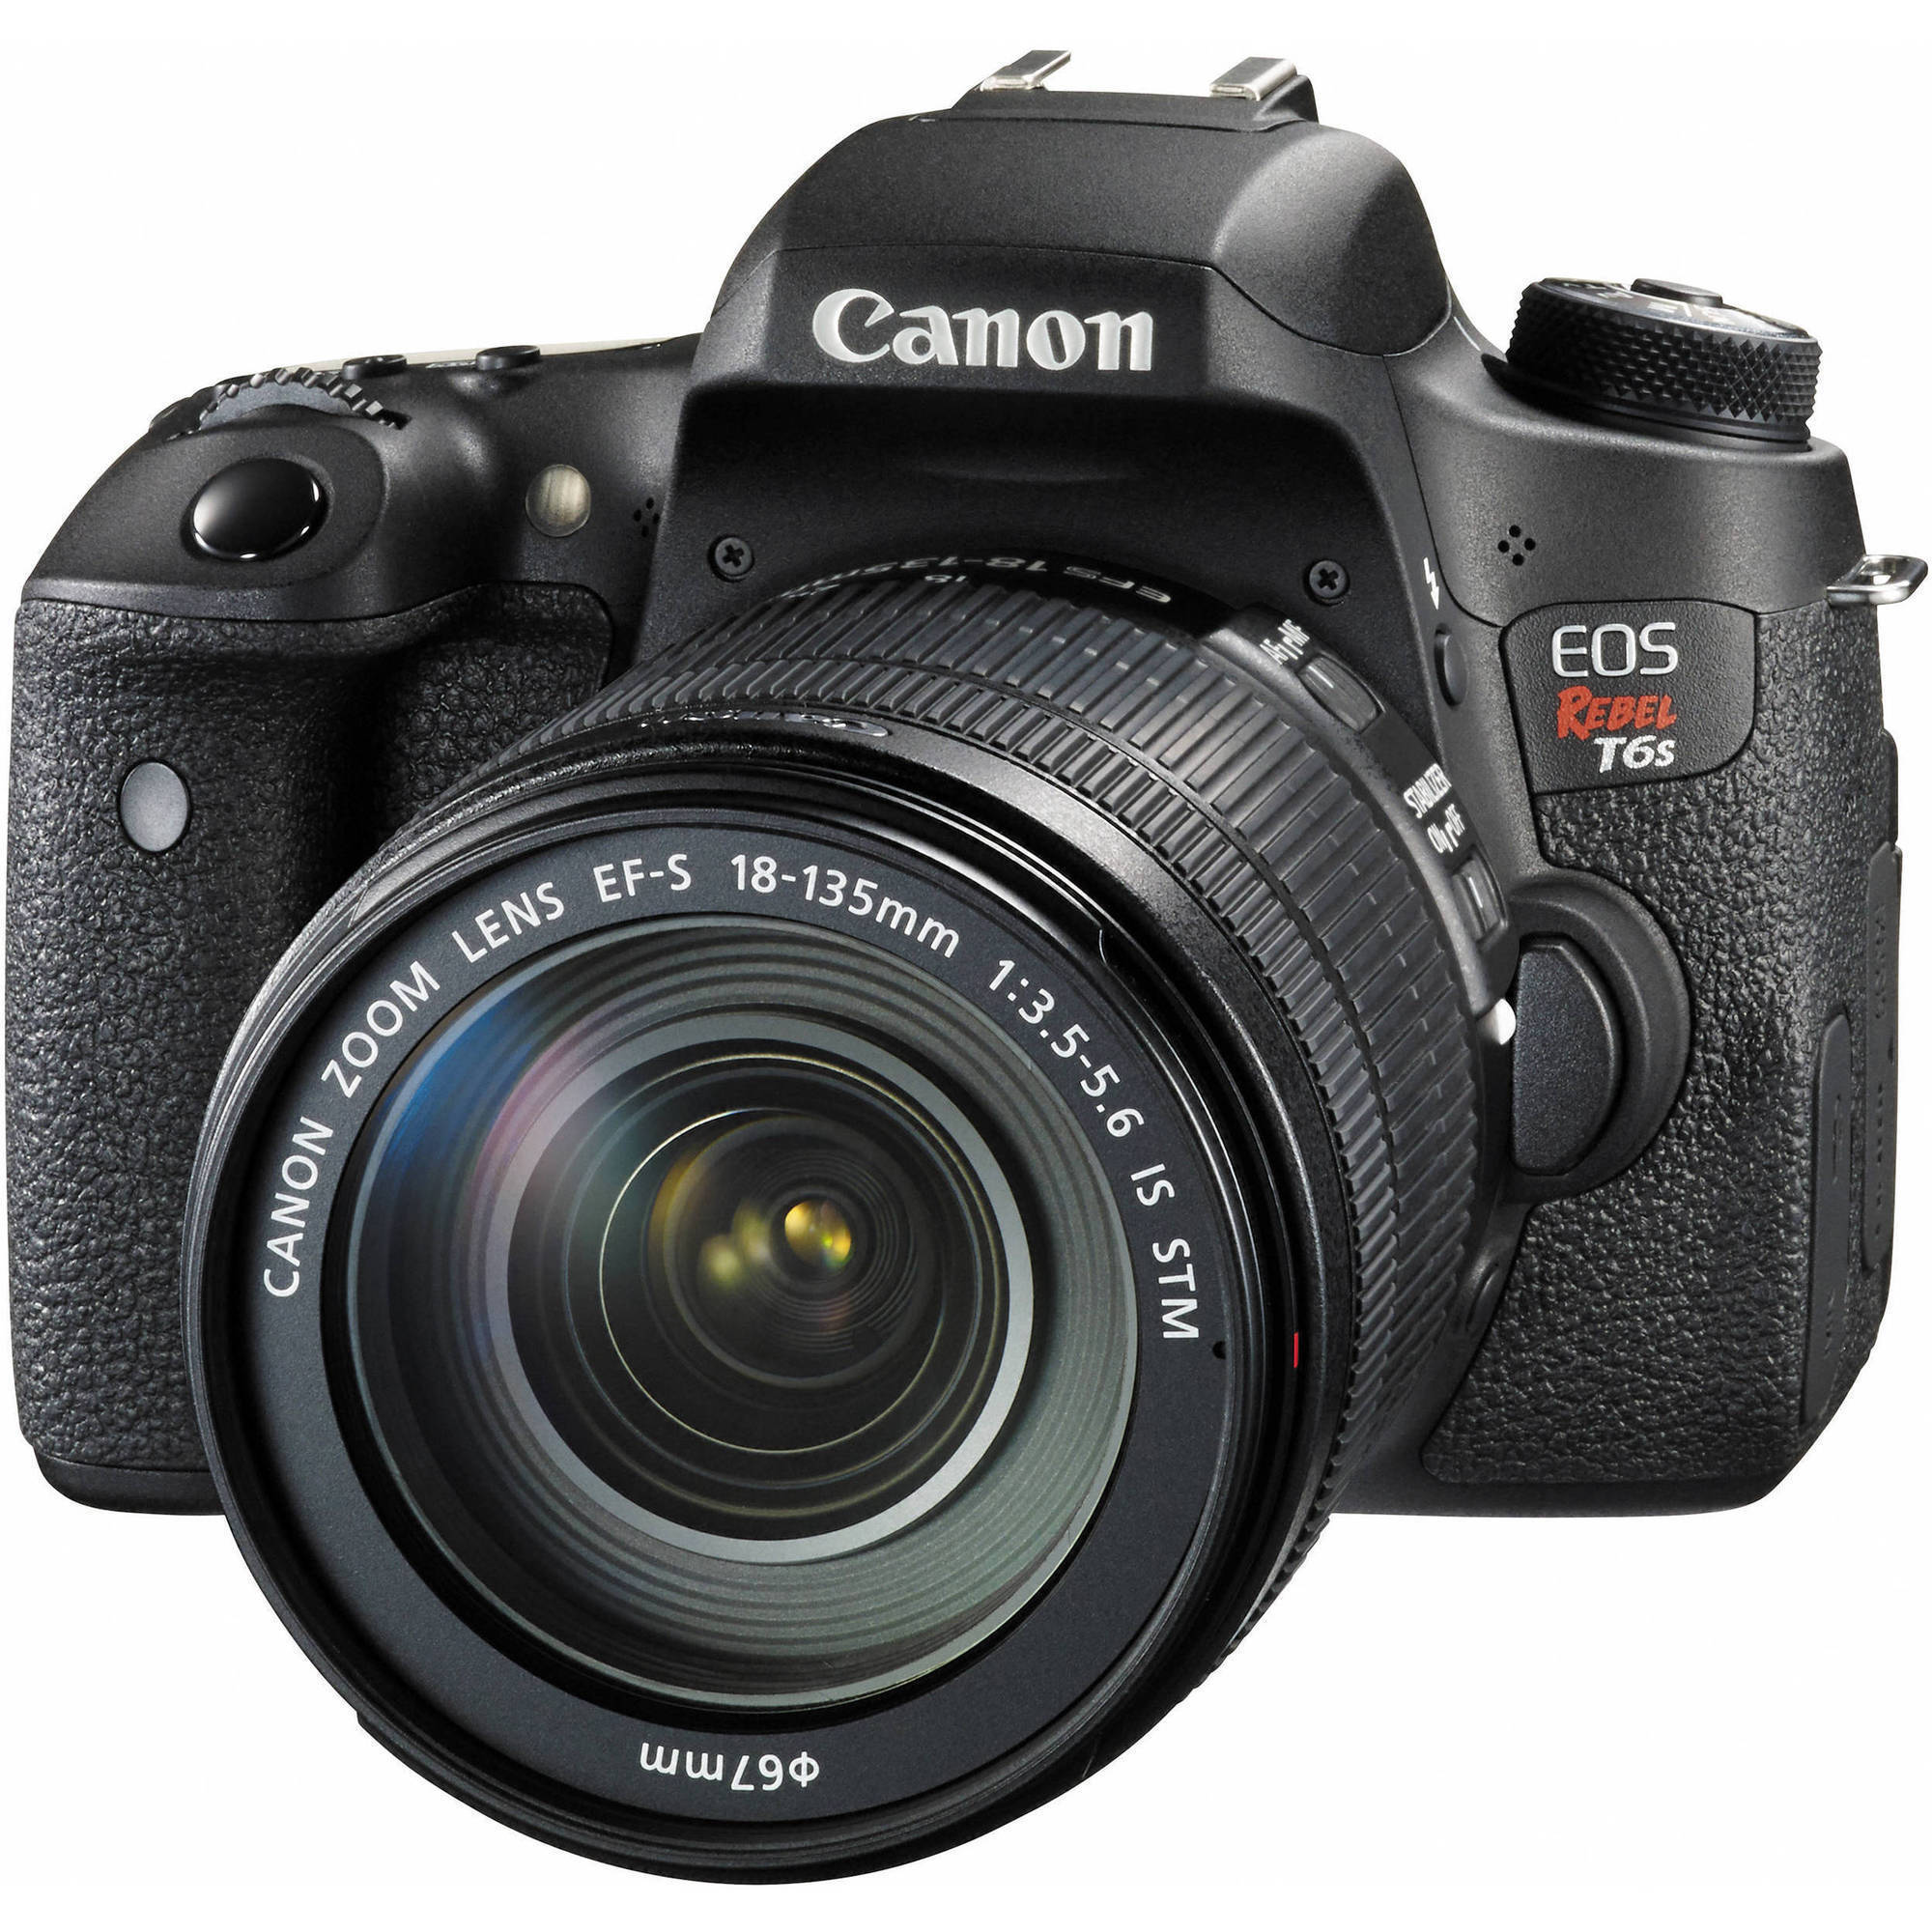 Canon Black EOS Rebel T6s Digital SLR Camera with 24.2 Megapixels and 18-135mm Lens Included